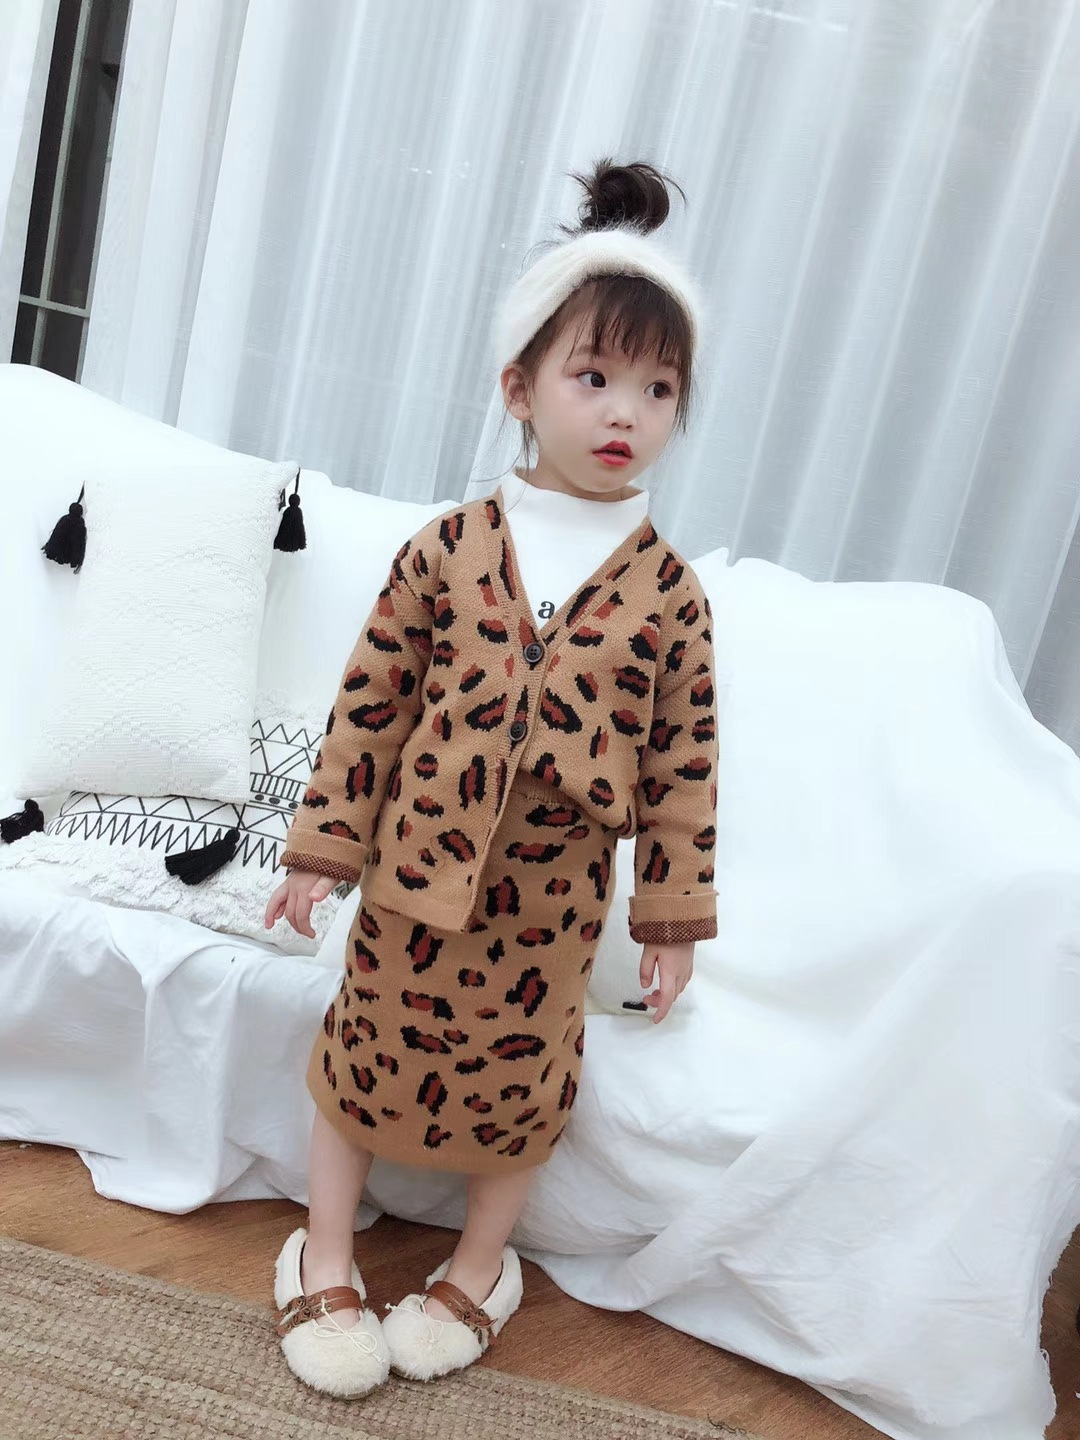 2018 Winter New Kids's Clothes Ladies Swimsuit Kids Sweater Cardigan Coat With Leopard Skirt Two-Piece Lip Print Sample